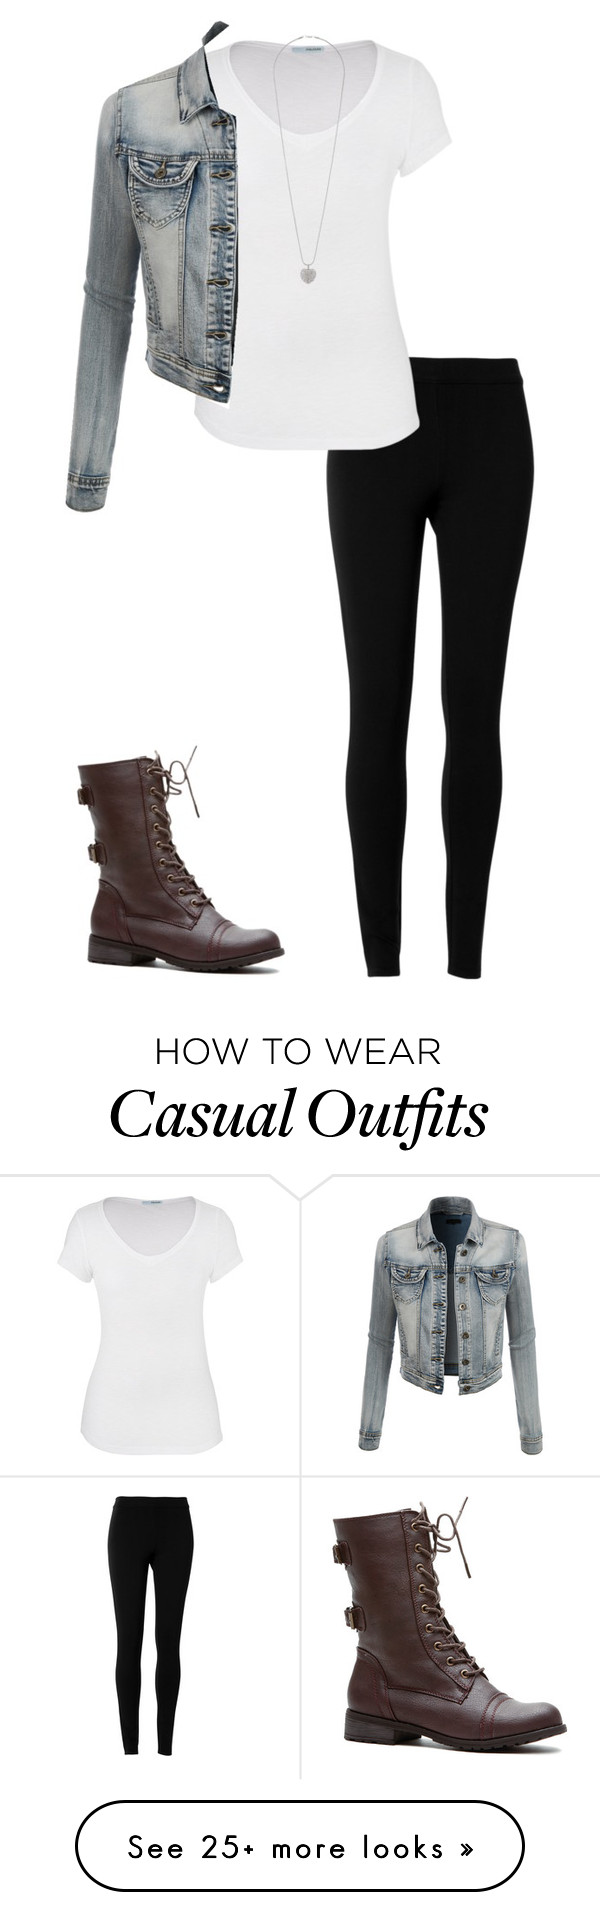 """""""Casual outfit"""" by eadurbala on Polyvore featuring mode, Max Studio, maurices, LE3NO en Dorothy Perkins"""